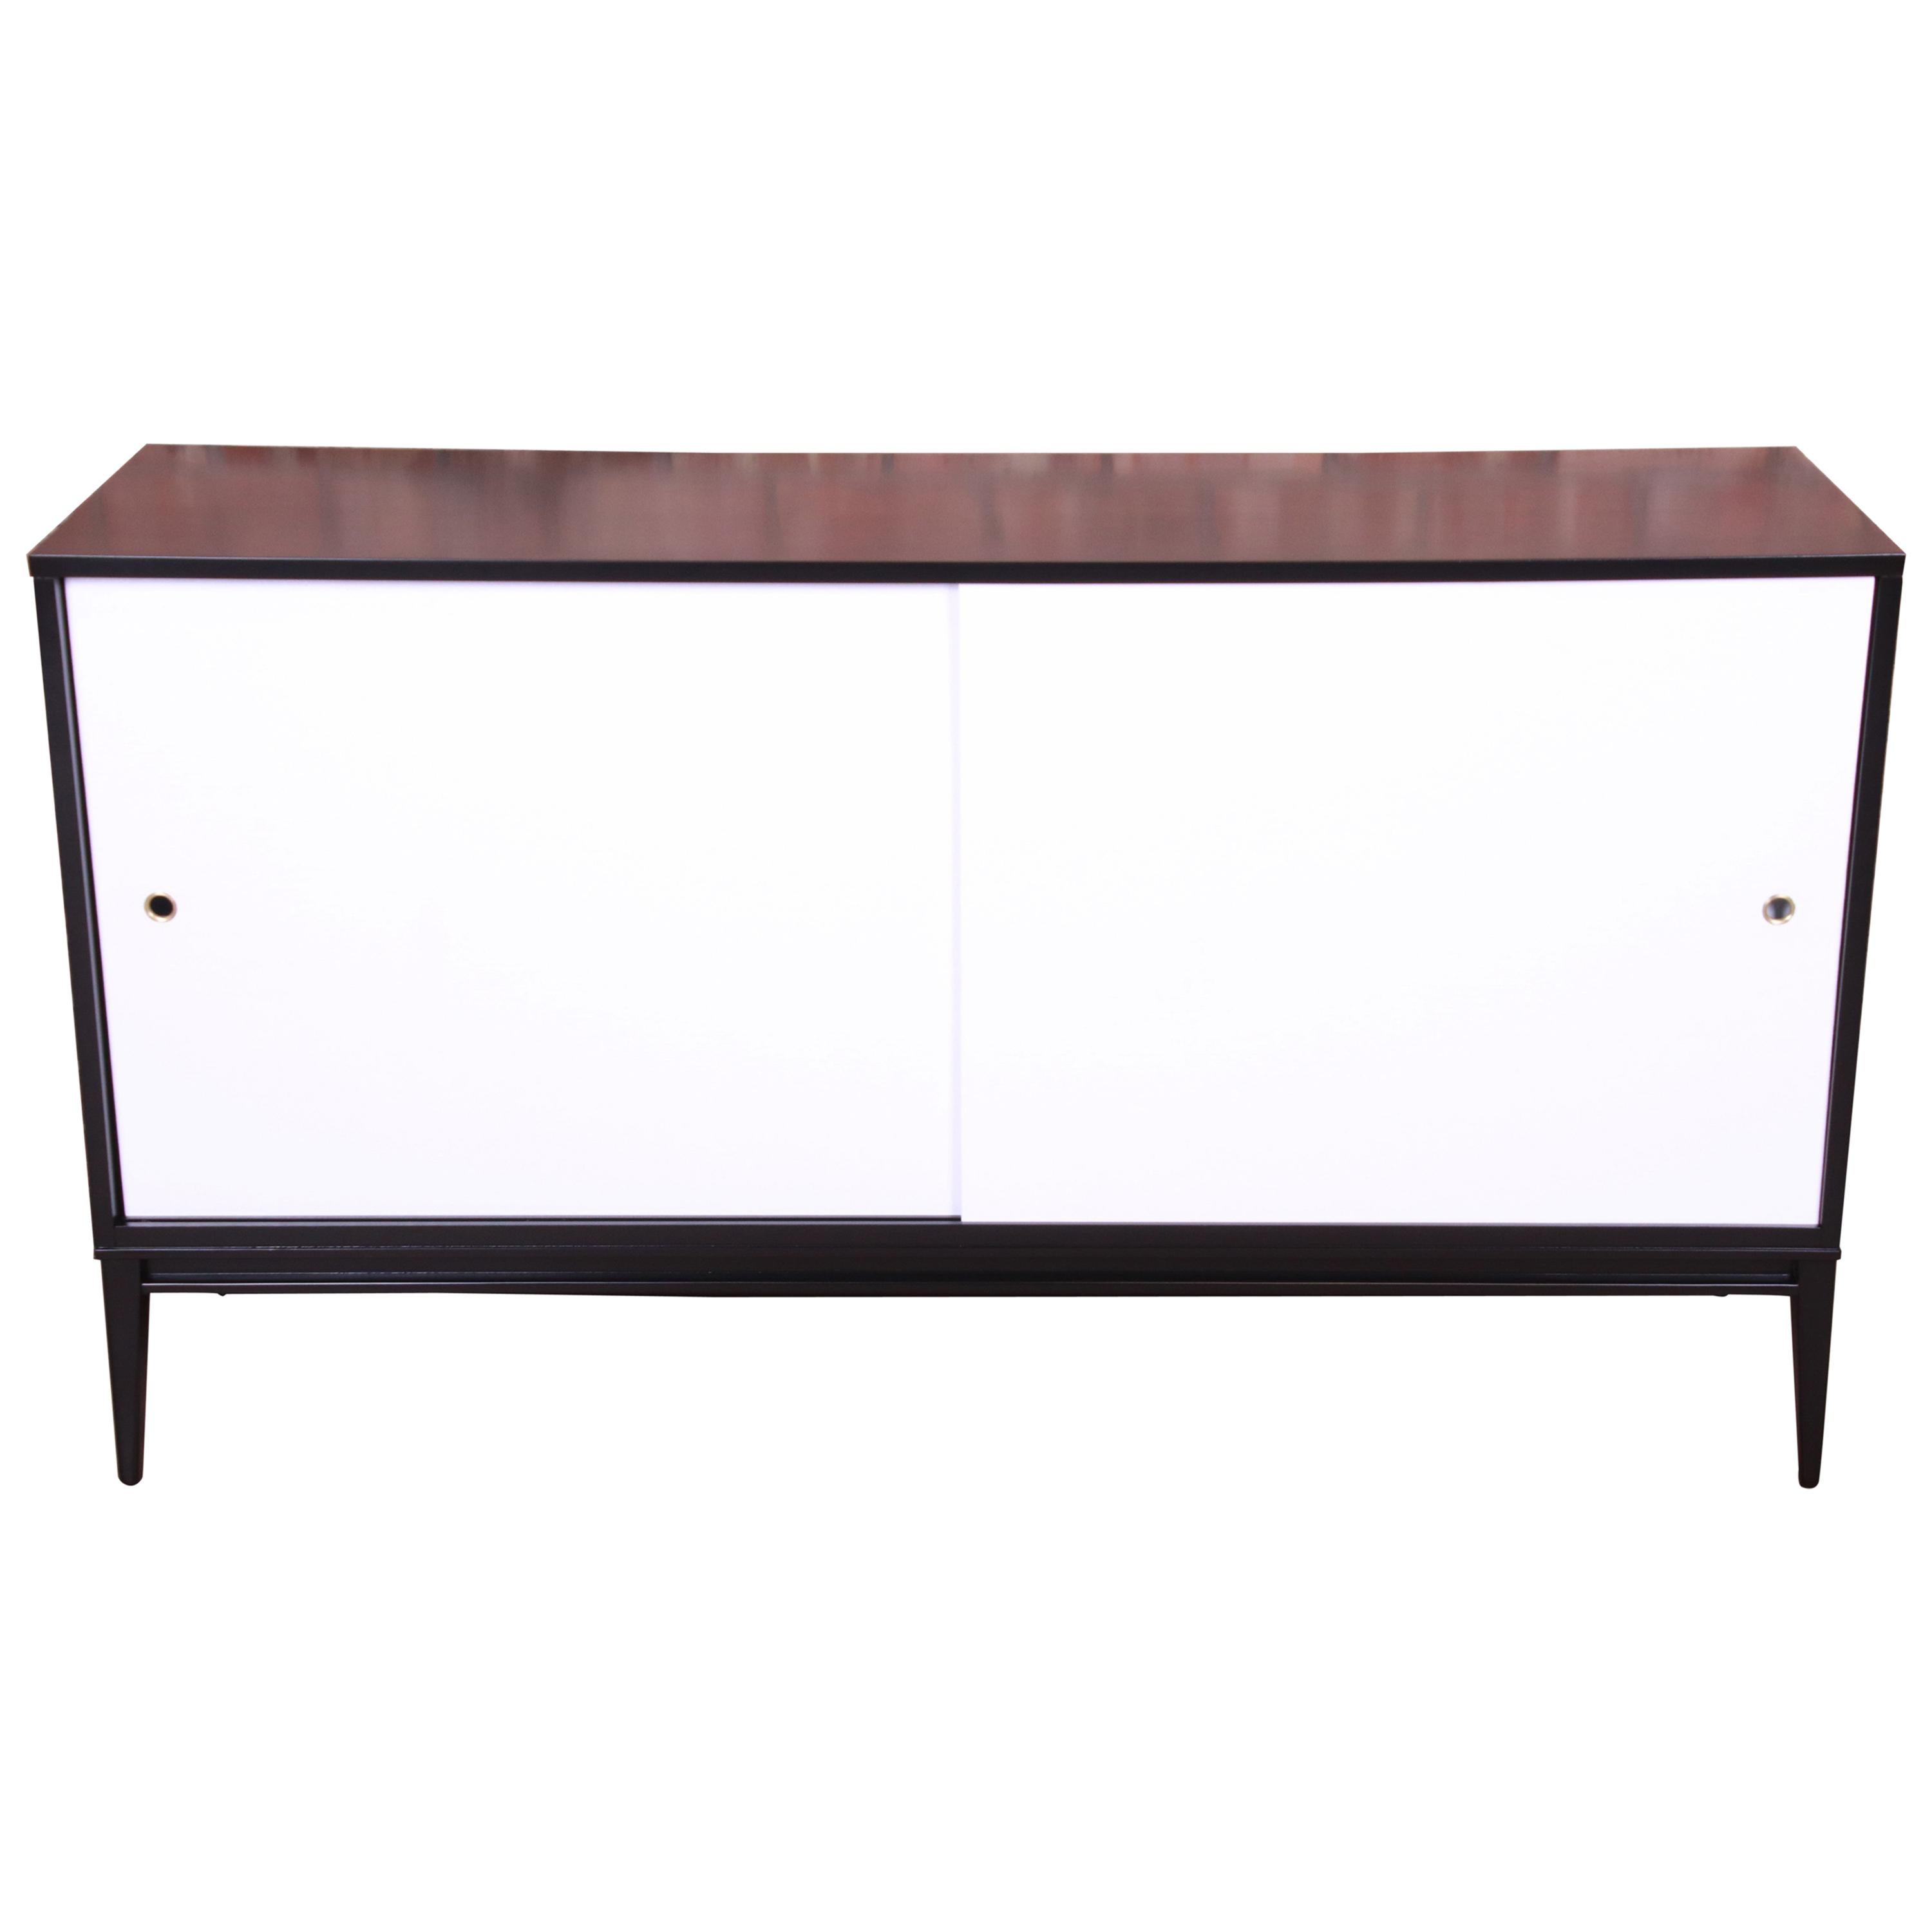 Paul McCobb Planner Group Black and White Lacquered Credenza, Newly Refinished